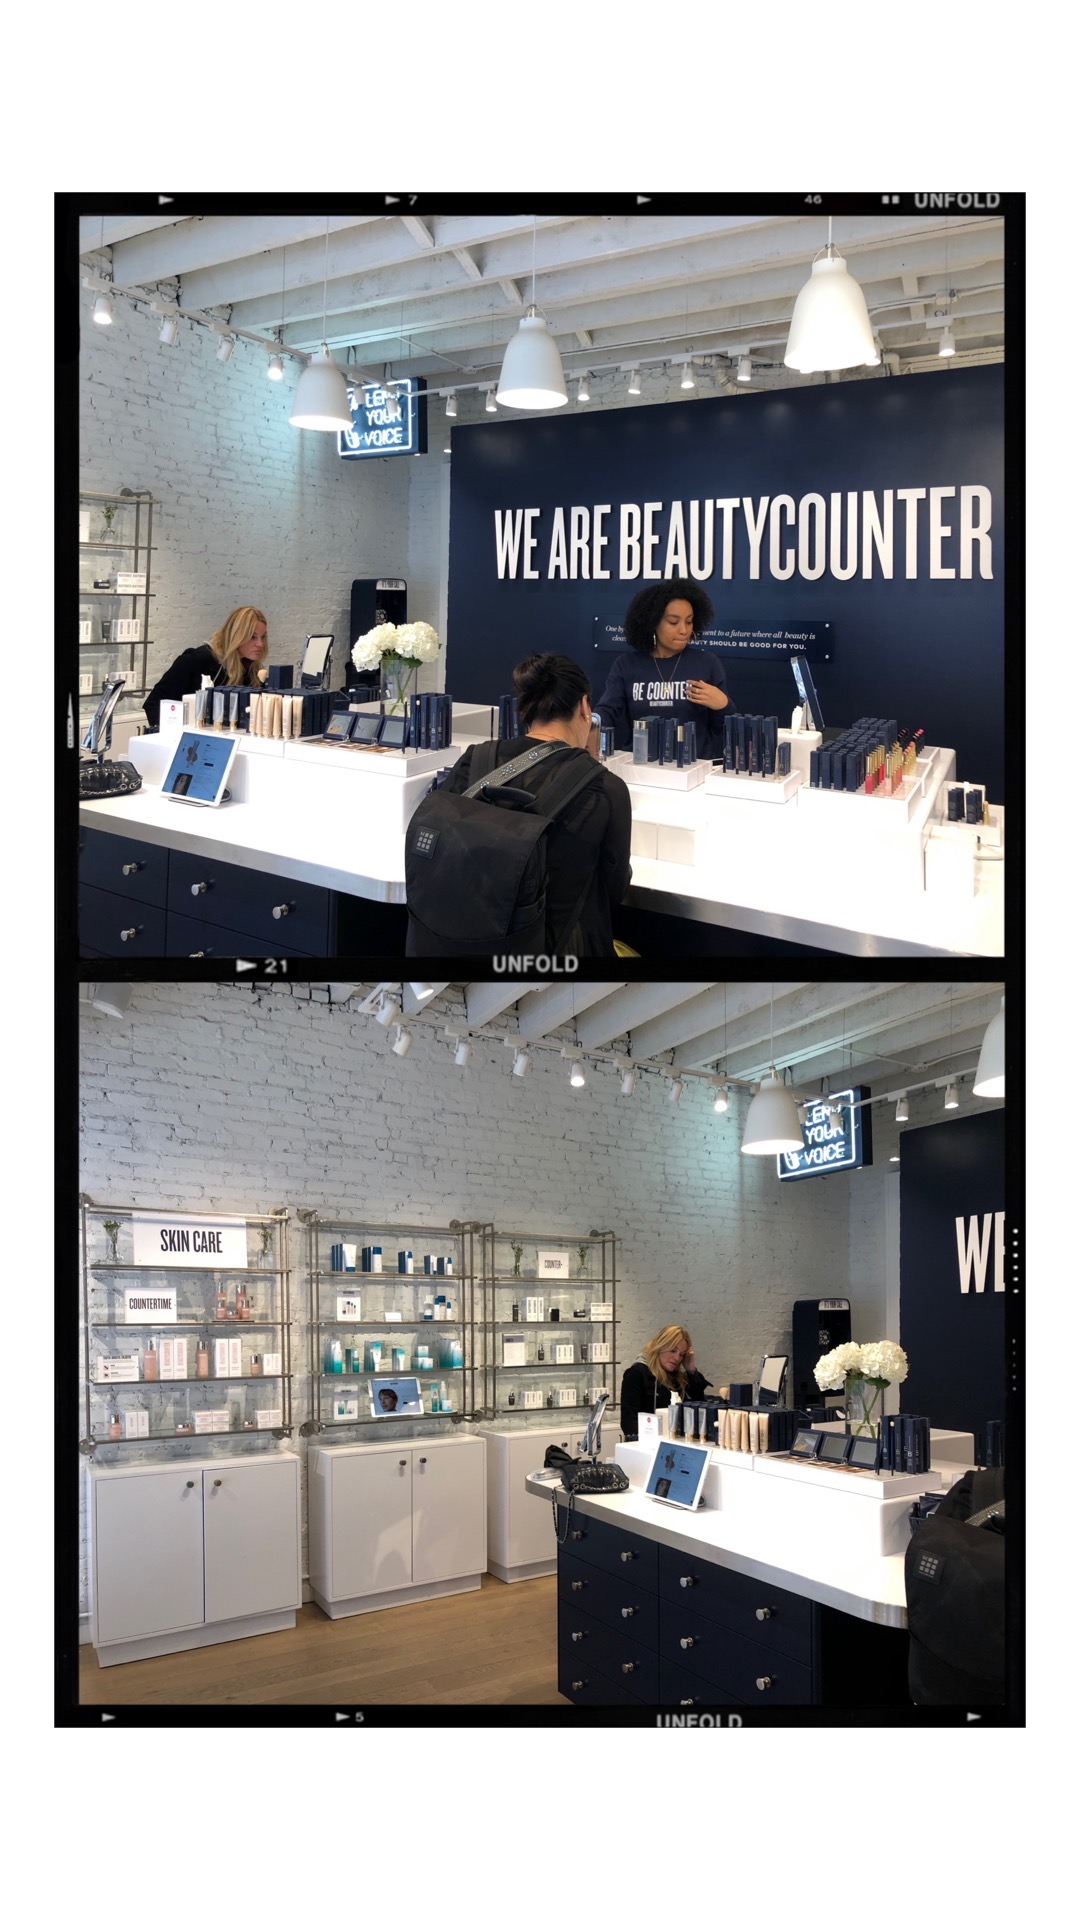 Beautycounter Retail Store New York City | Becoming A Beautycounter Consultant